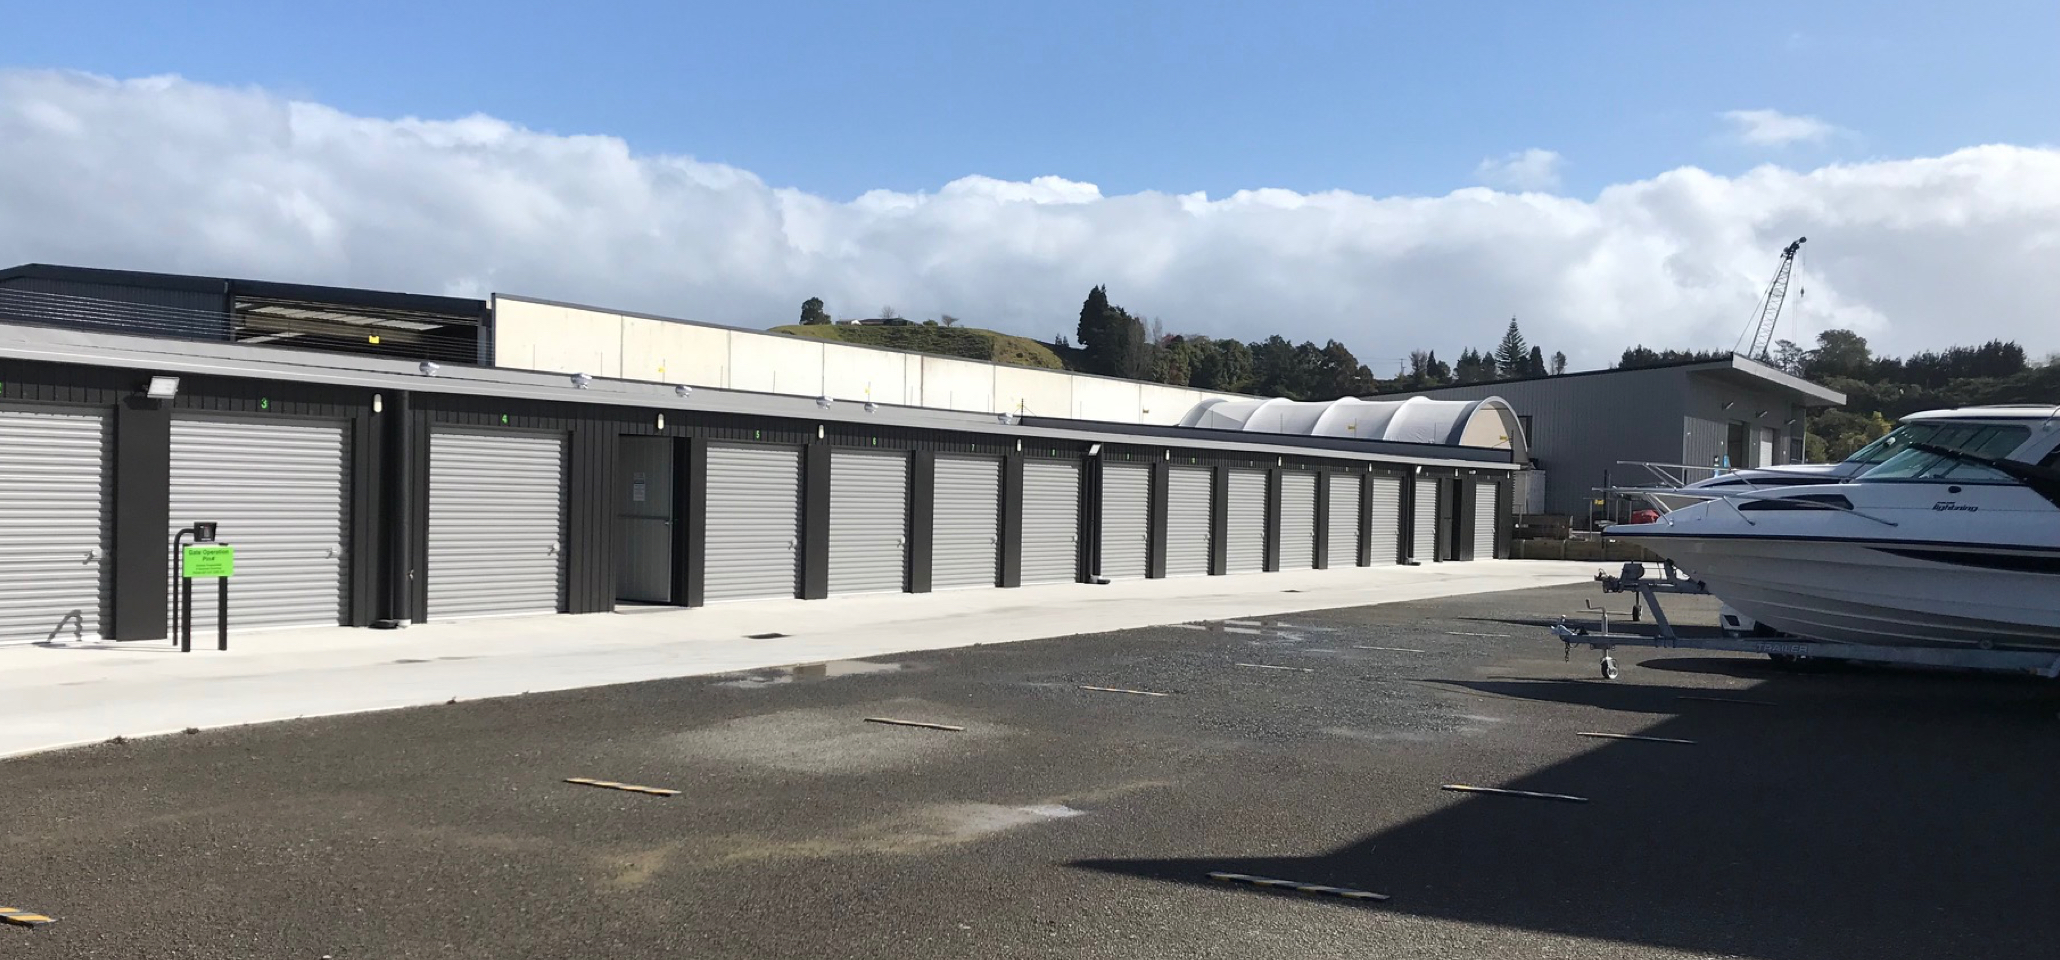 Key things to know about our self-storage facility in Tauranga